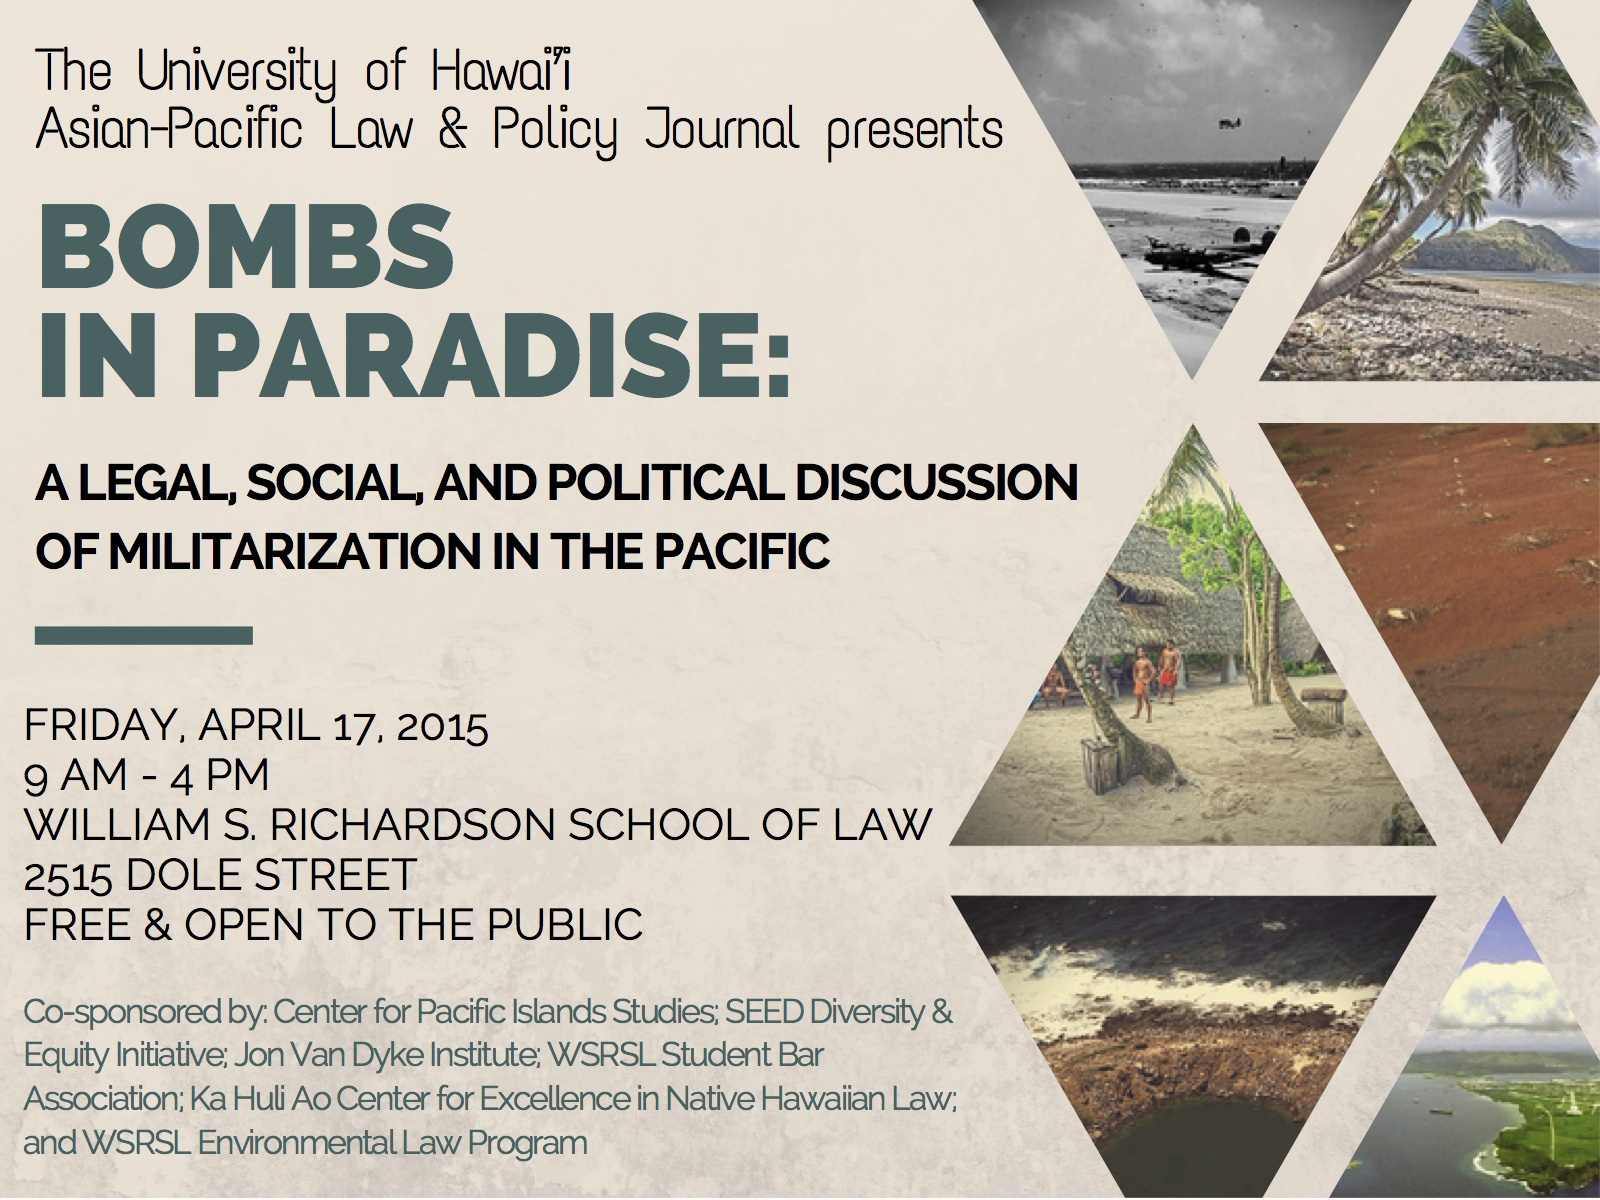 Bombs in Paradise: A Legal, Social, and Political Discussion of Militarization in the Pacific